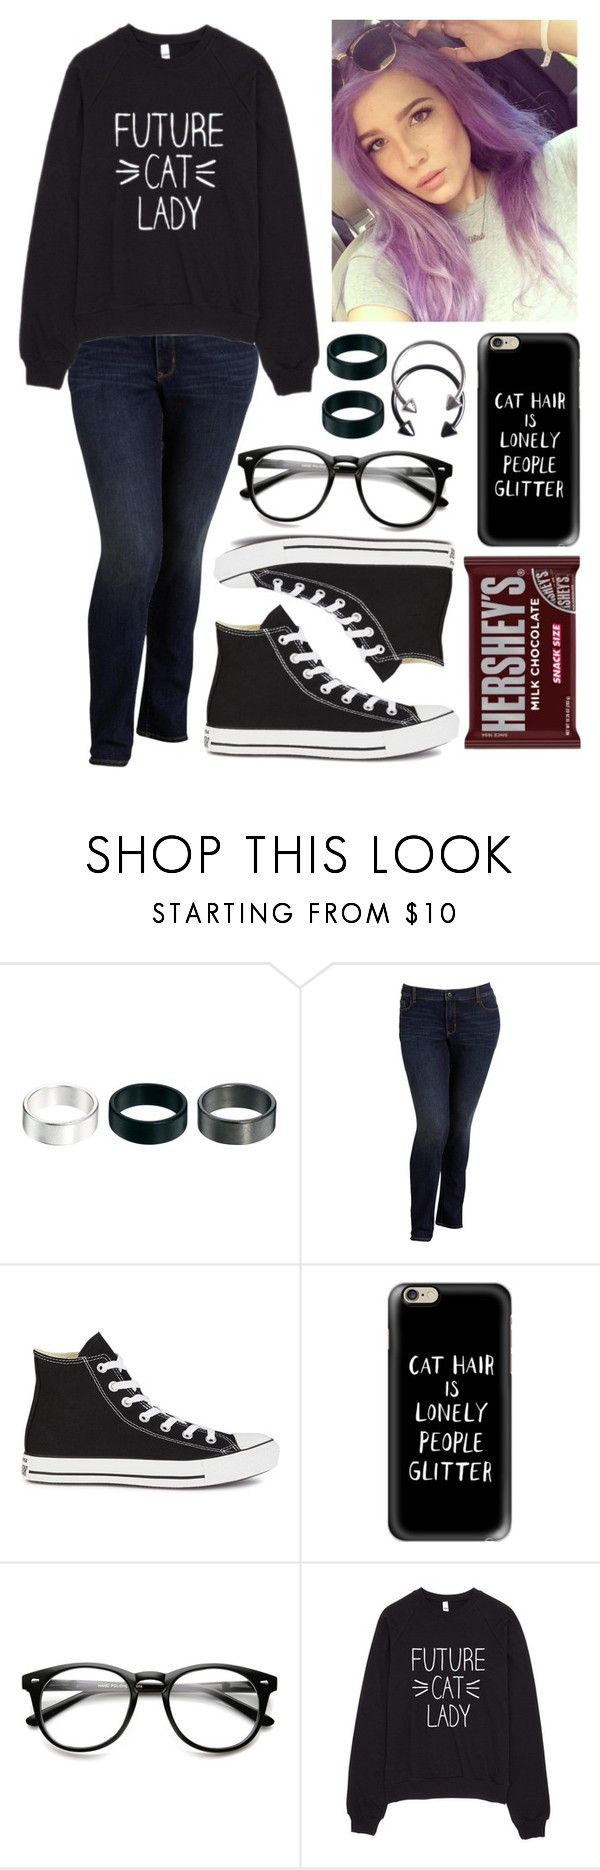 """""""Cat Hair Is Lonely People Glitter"""" by spnlex ❤ liked on Polyvore featuring ASOS, Old Navy, Converse, Casetify, Pieces and Hershey's"""